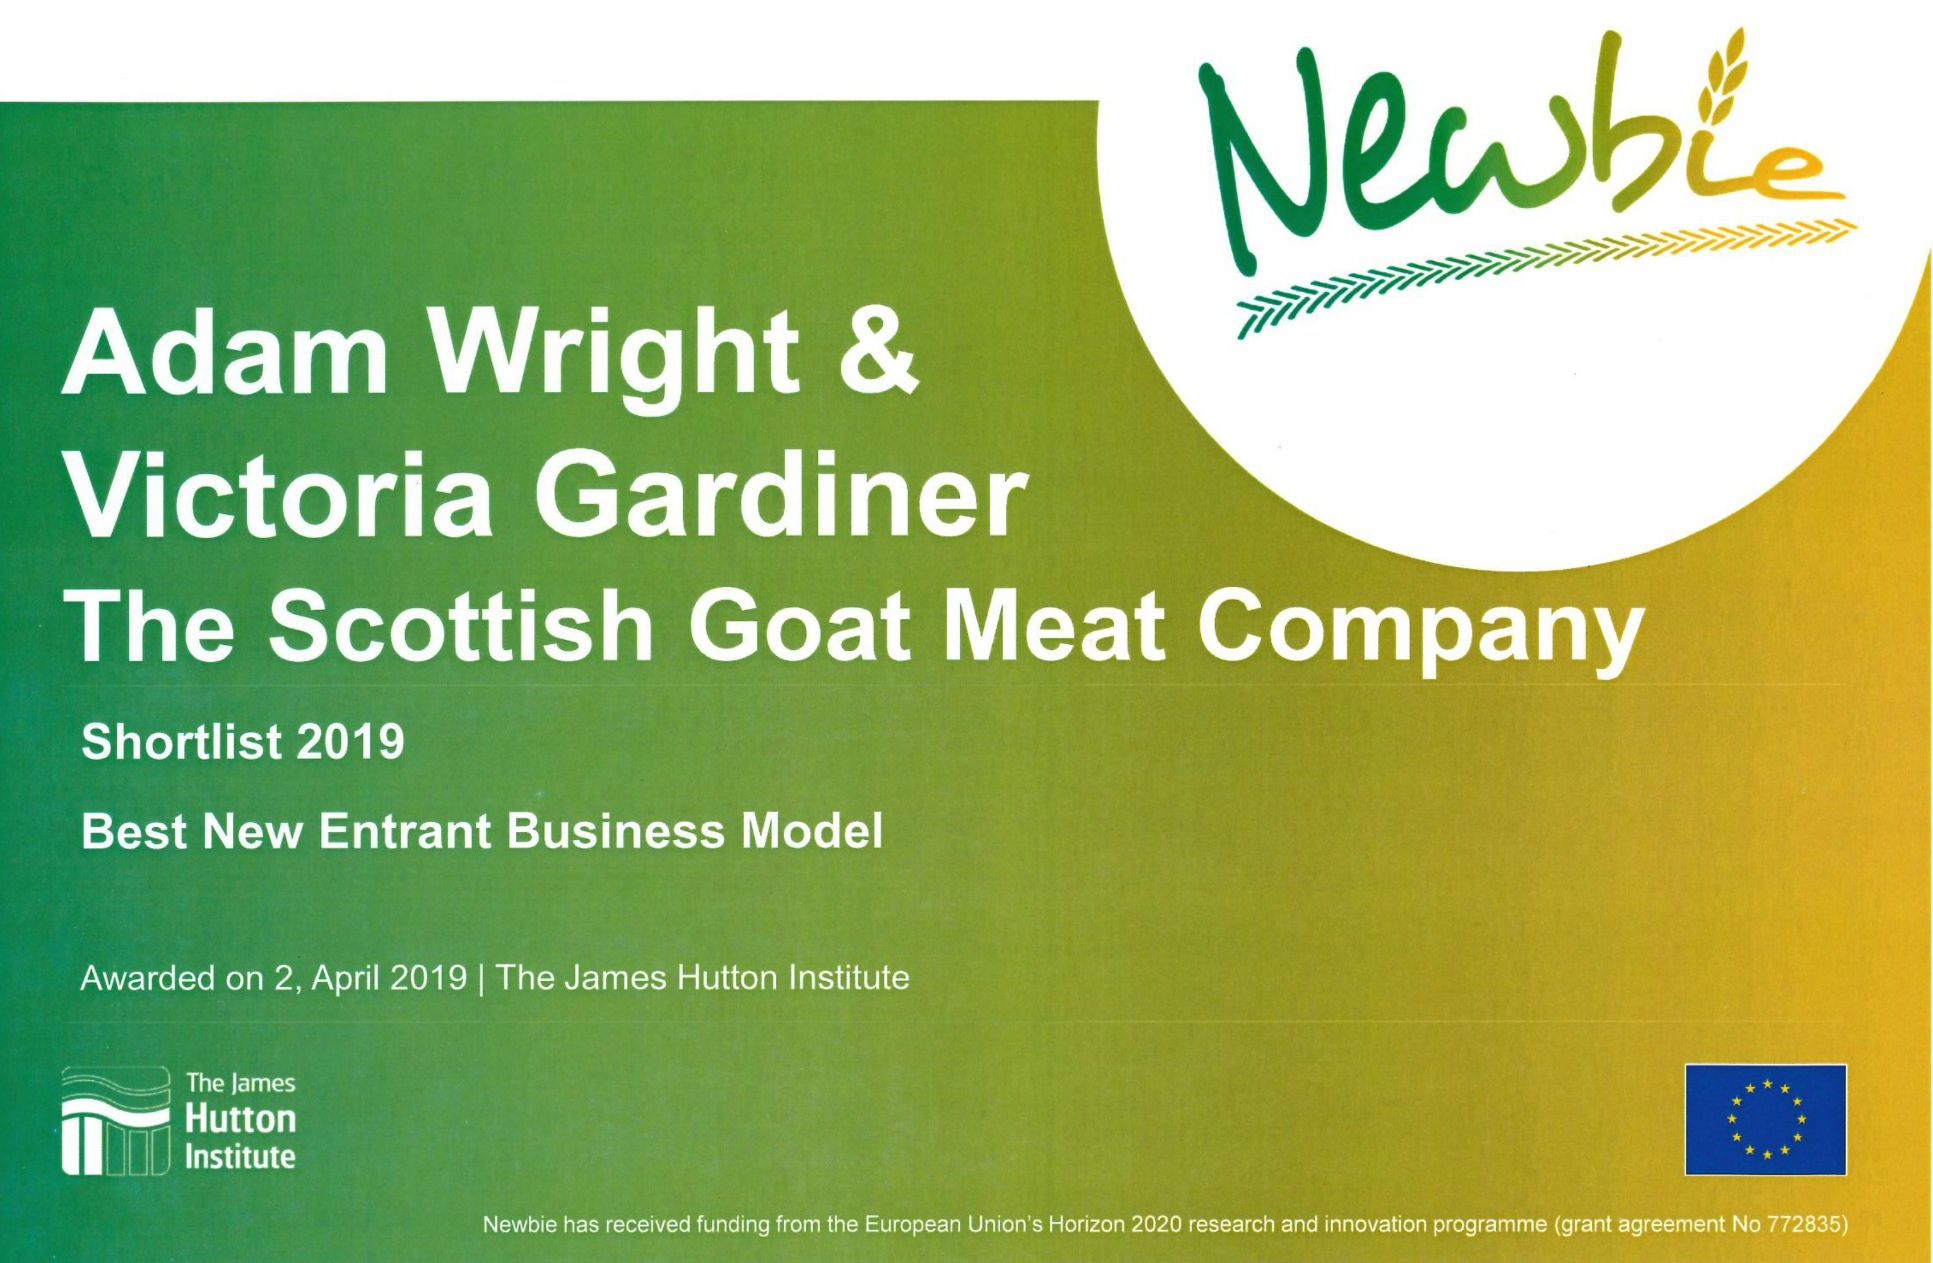 SCOTLAND'S FINEST GOAT MEAT